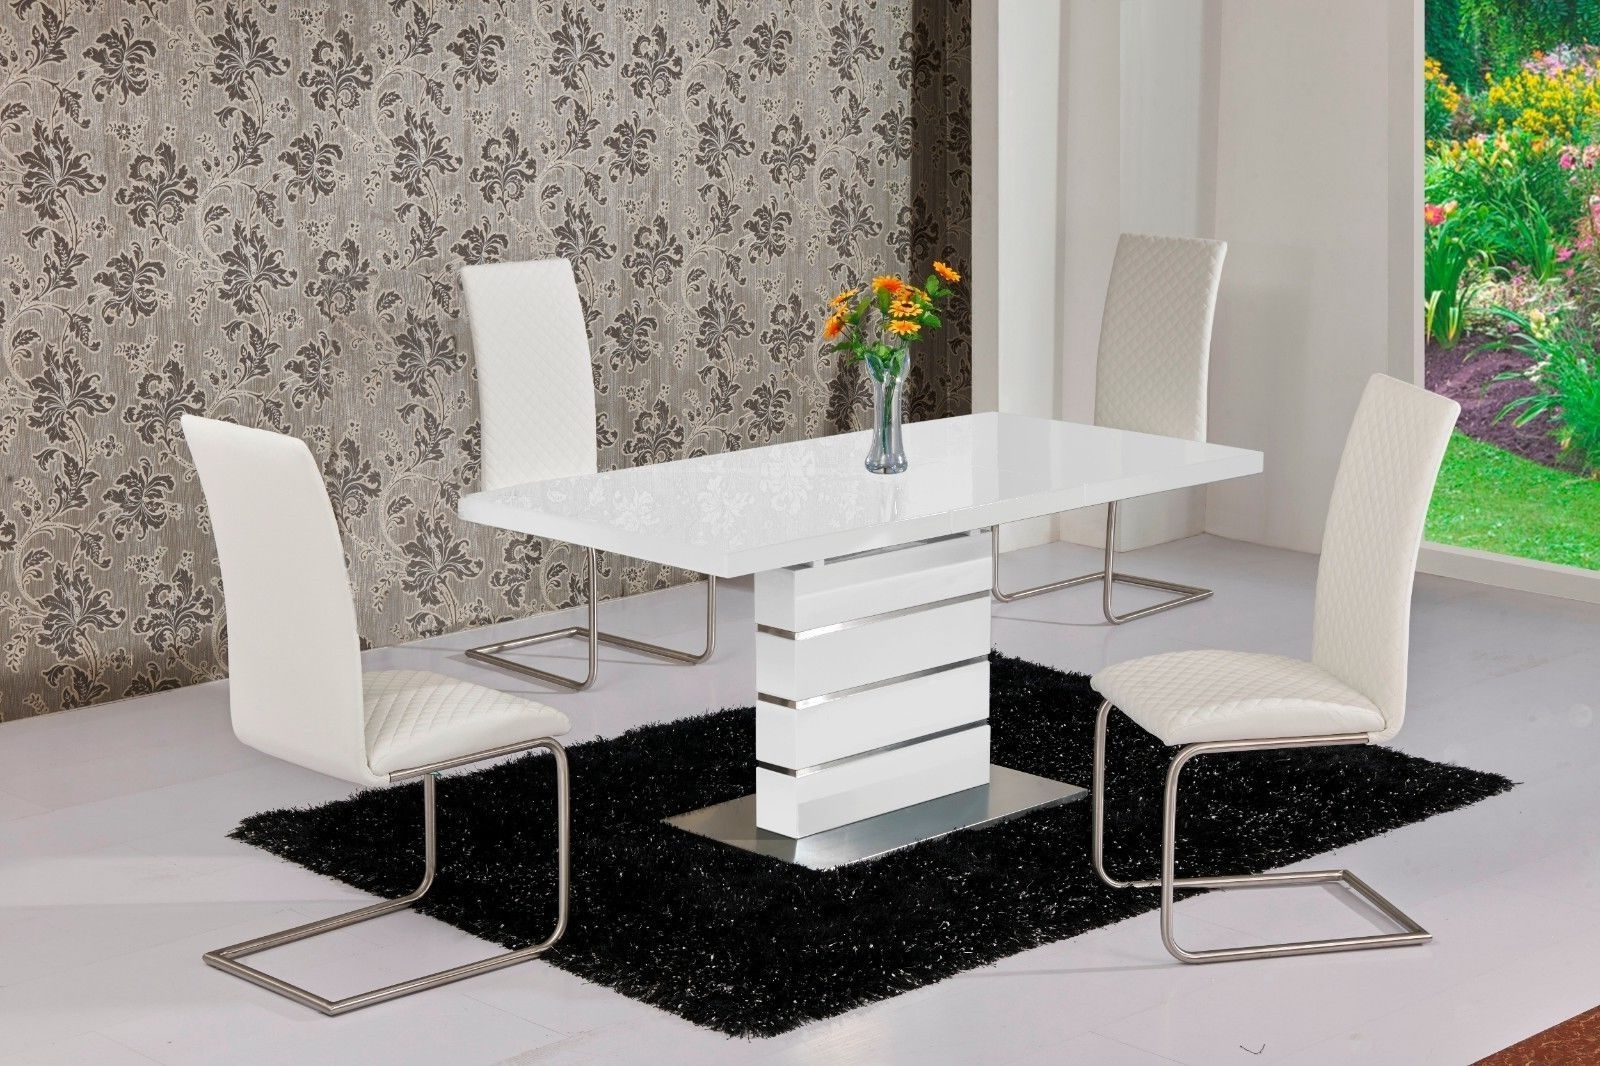 Extendable Dining Table And 4 Chairs With Regard To Favorite Mace High Gloss Extending 120 160 Dining Table & Chair Set – White (View 24 of 25)